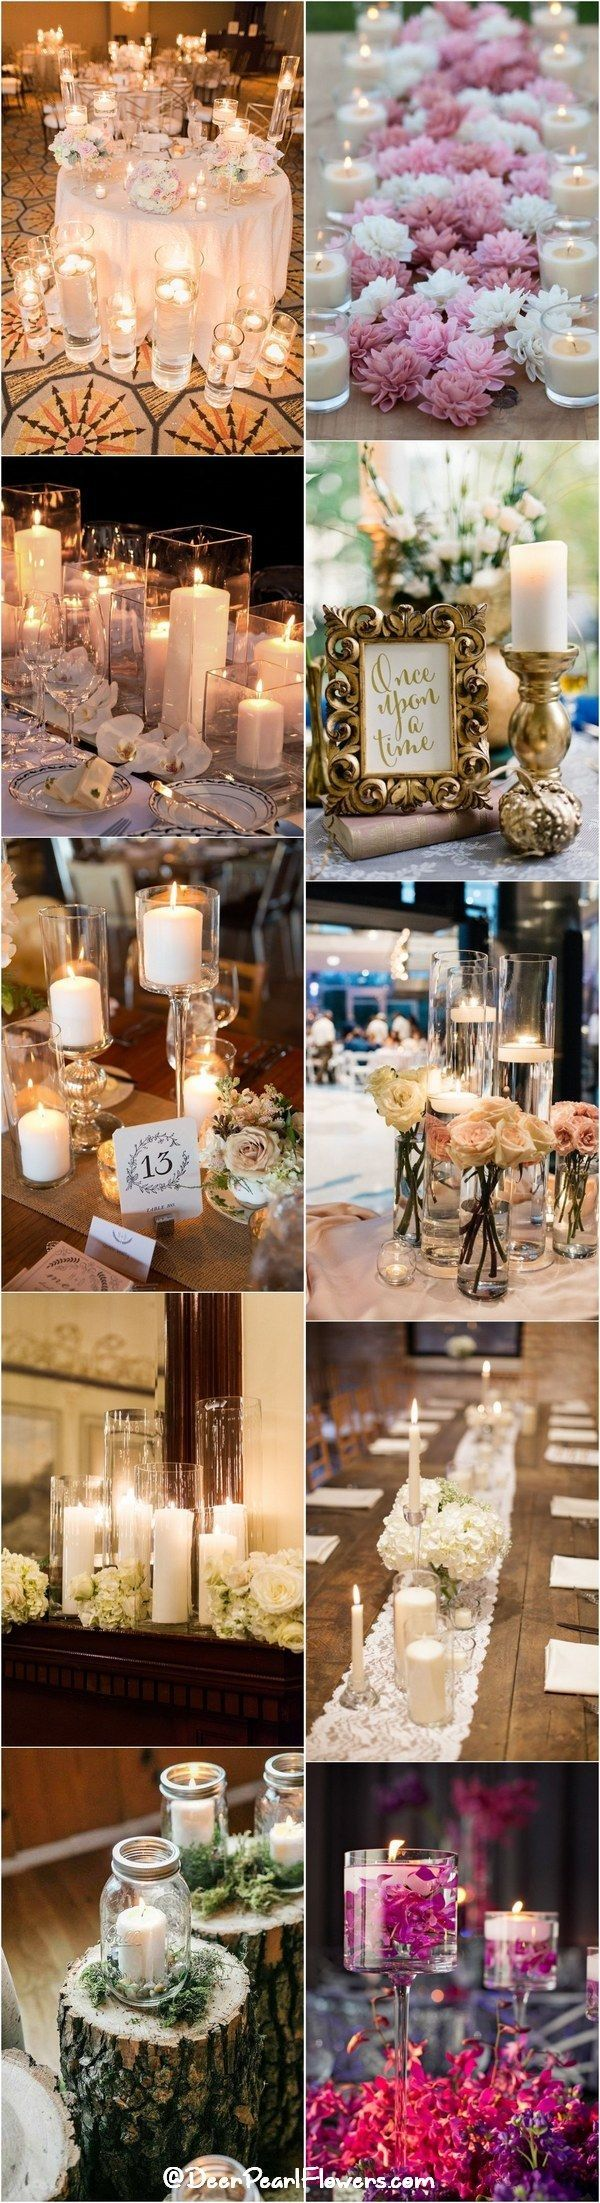 20 Impossibly Romantic Floating Wedding Centerpieces